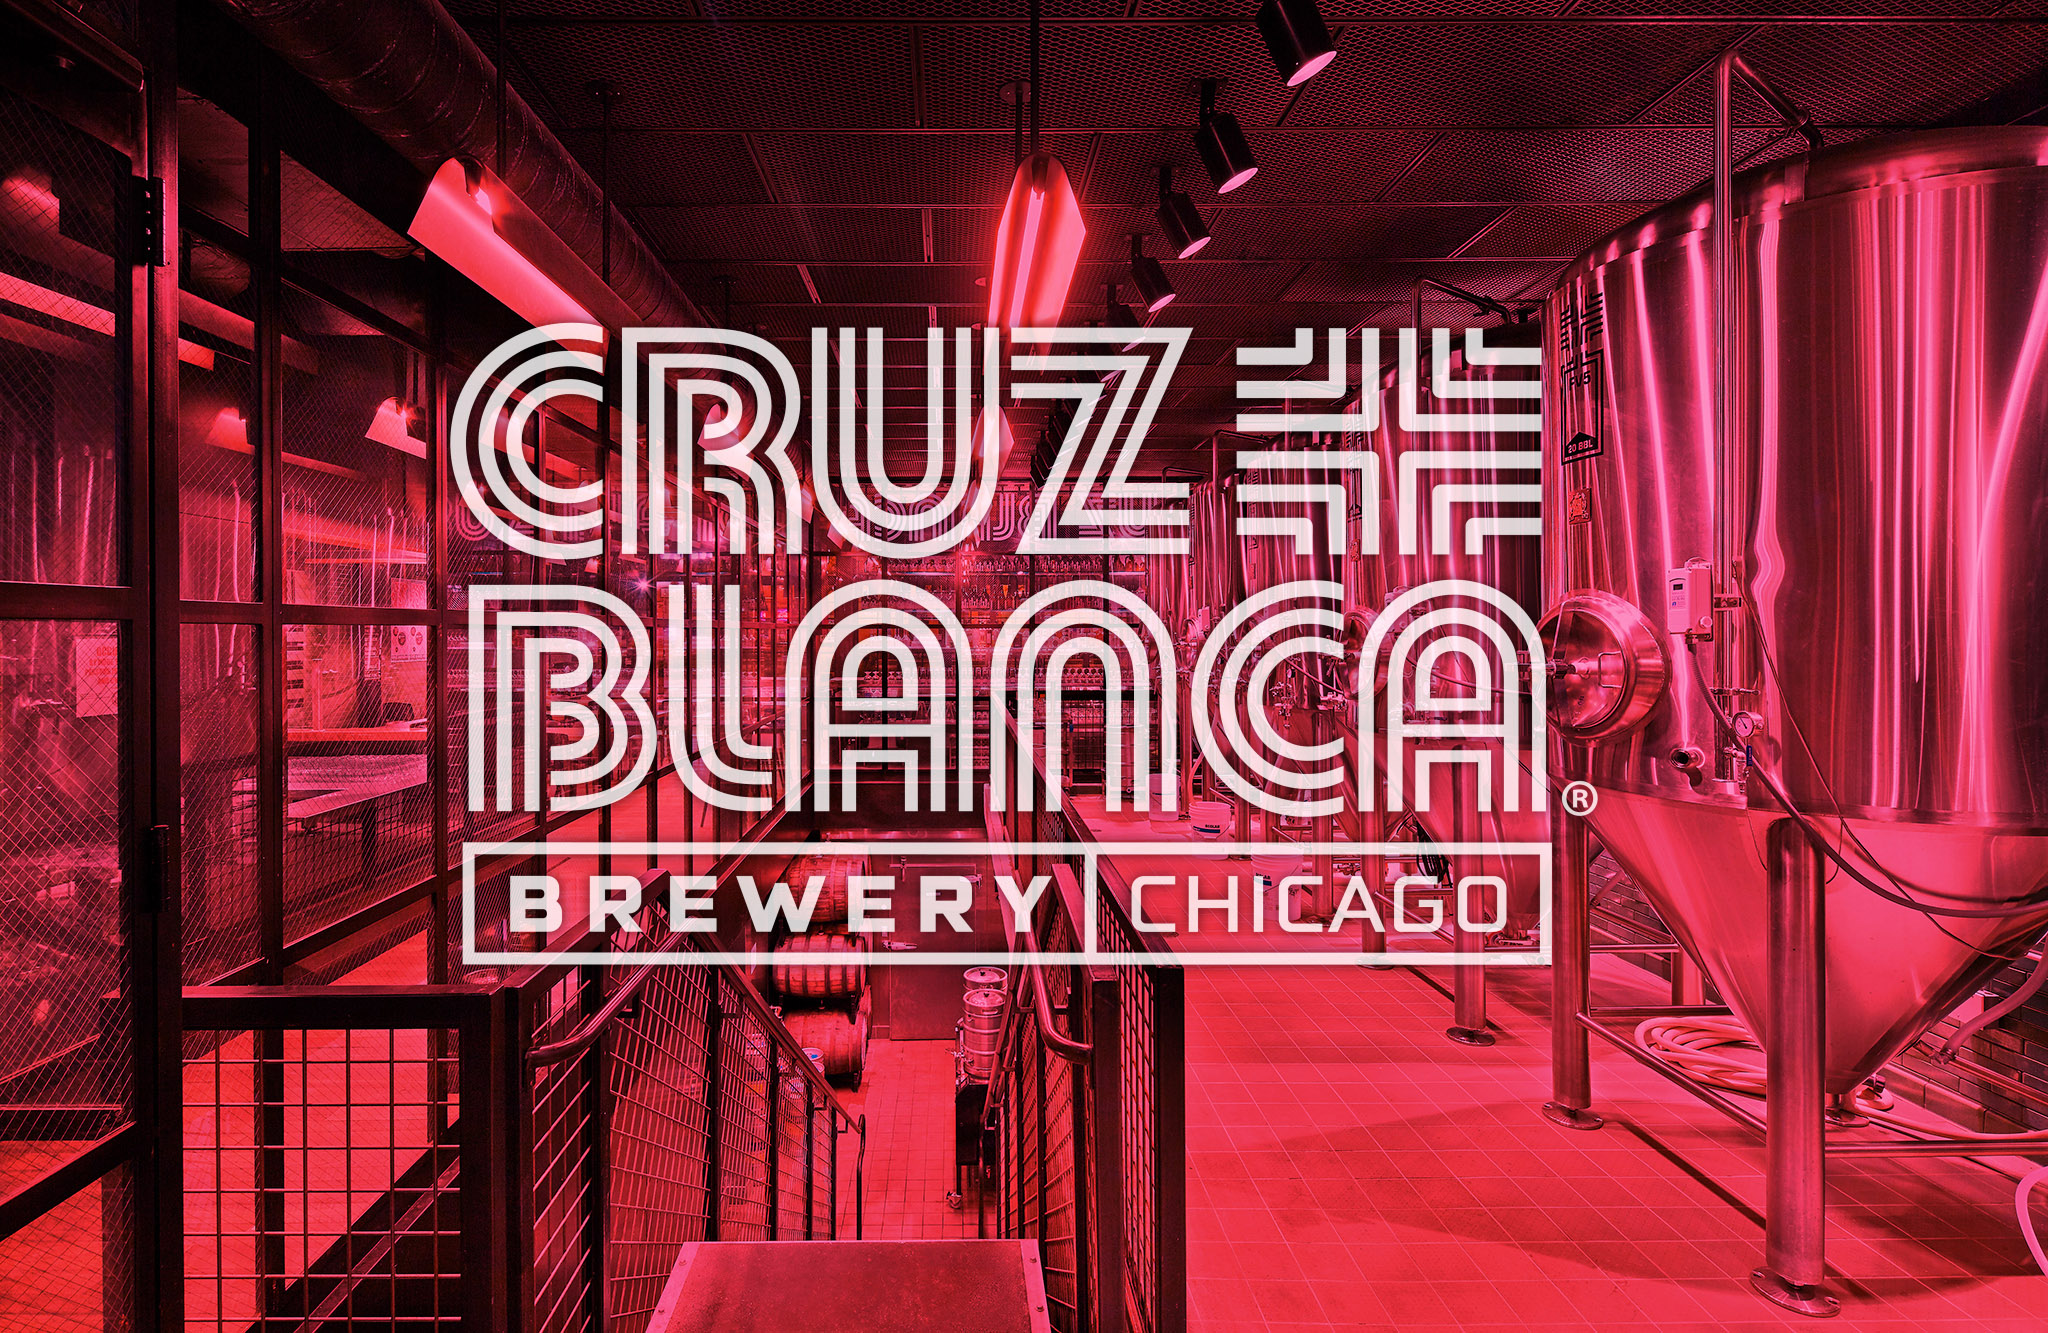 Cruz Blanca Chicago Brewery